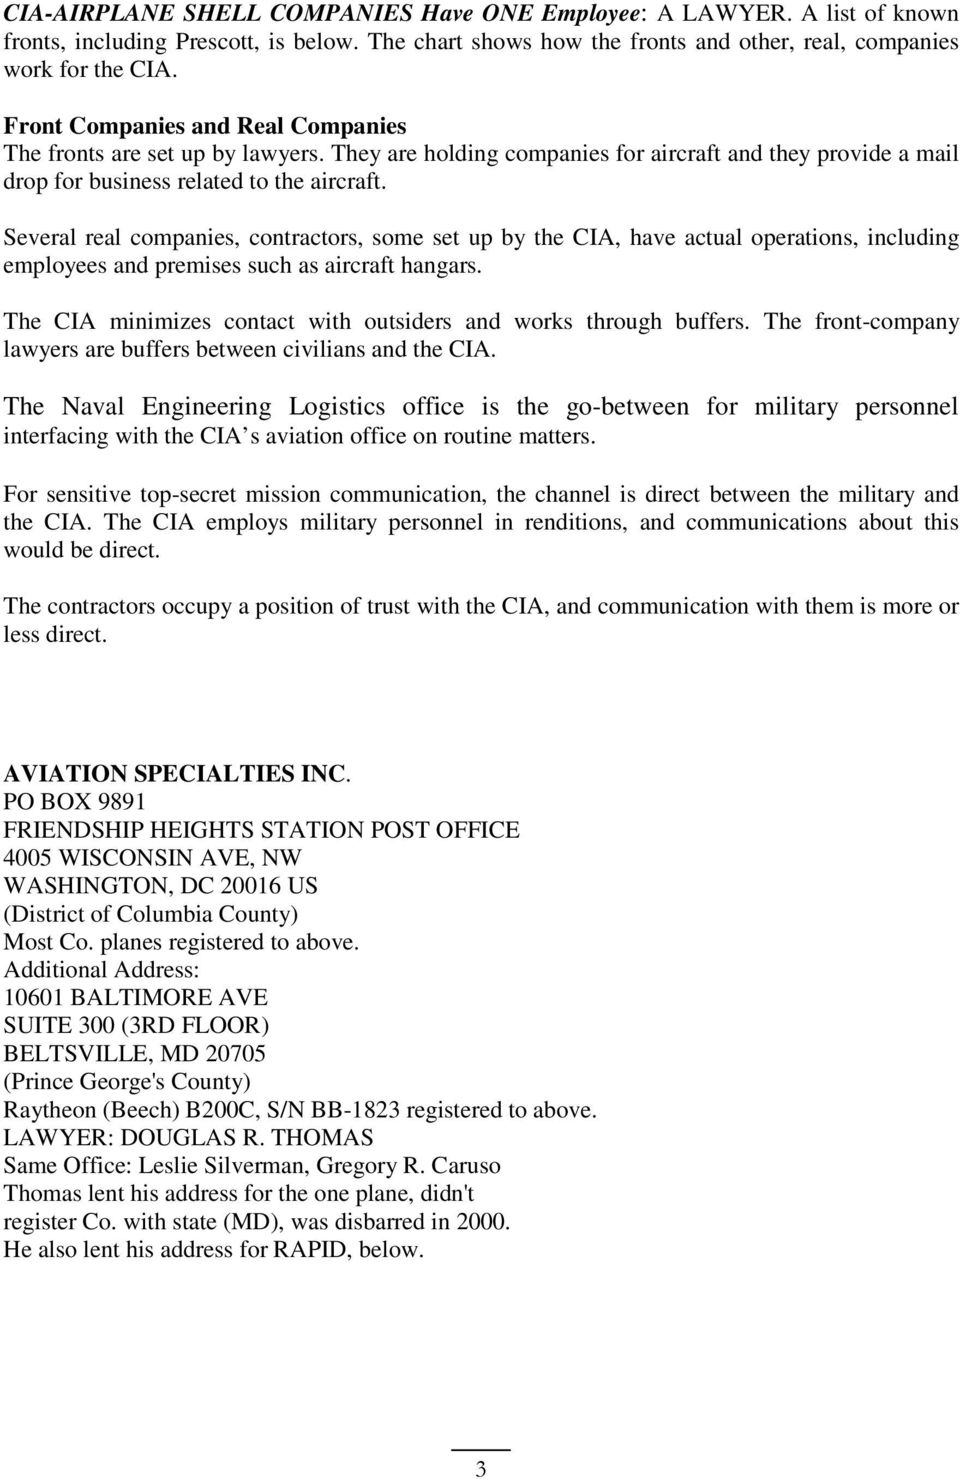 Several real companies, contractors, some set up by the CIA, have actual operations, including employees and premises such as aircraft hangars.